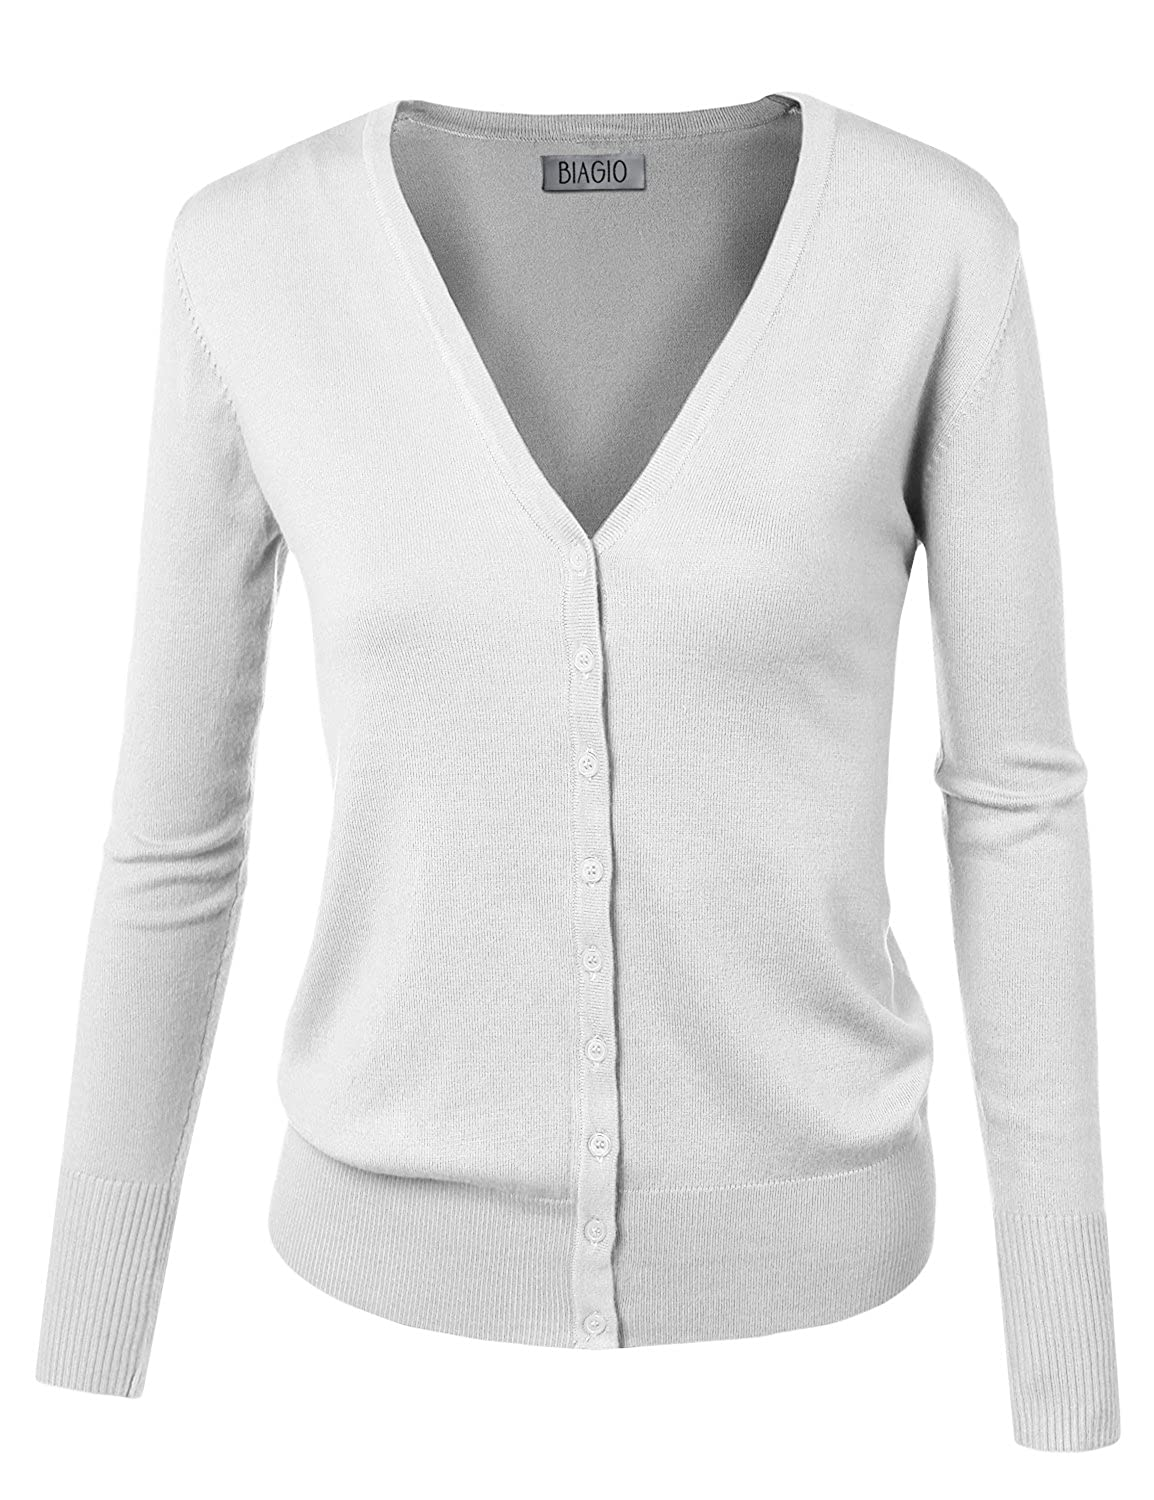 BIADANI Women Button Down Long Sleeve V-Neck Soft Knit Cardigan Sweater